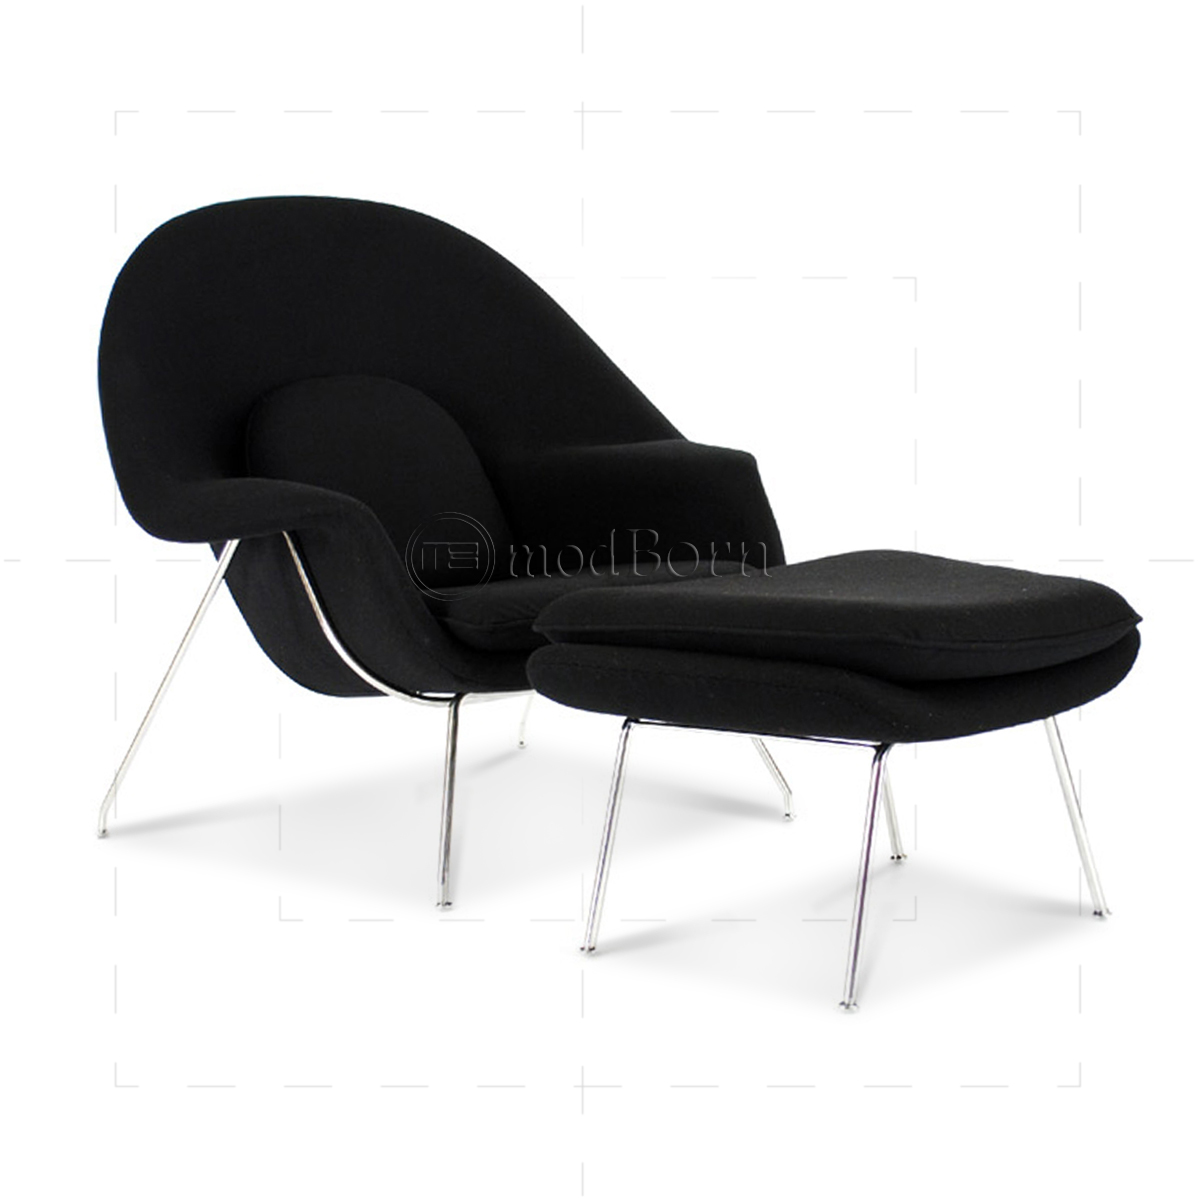 100 Saarinen Chair Reproduction Bedroom Eames Chair Replica Toronto Louis Xv Furniture